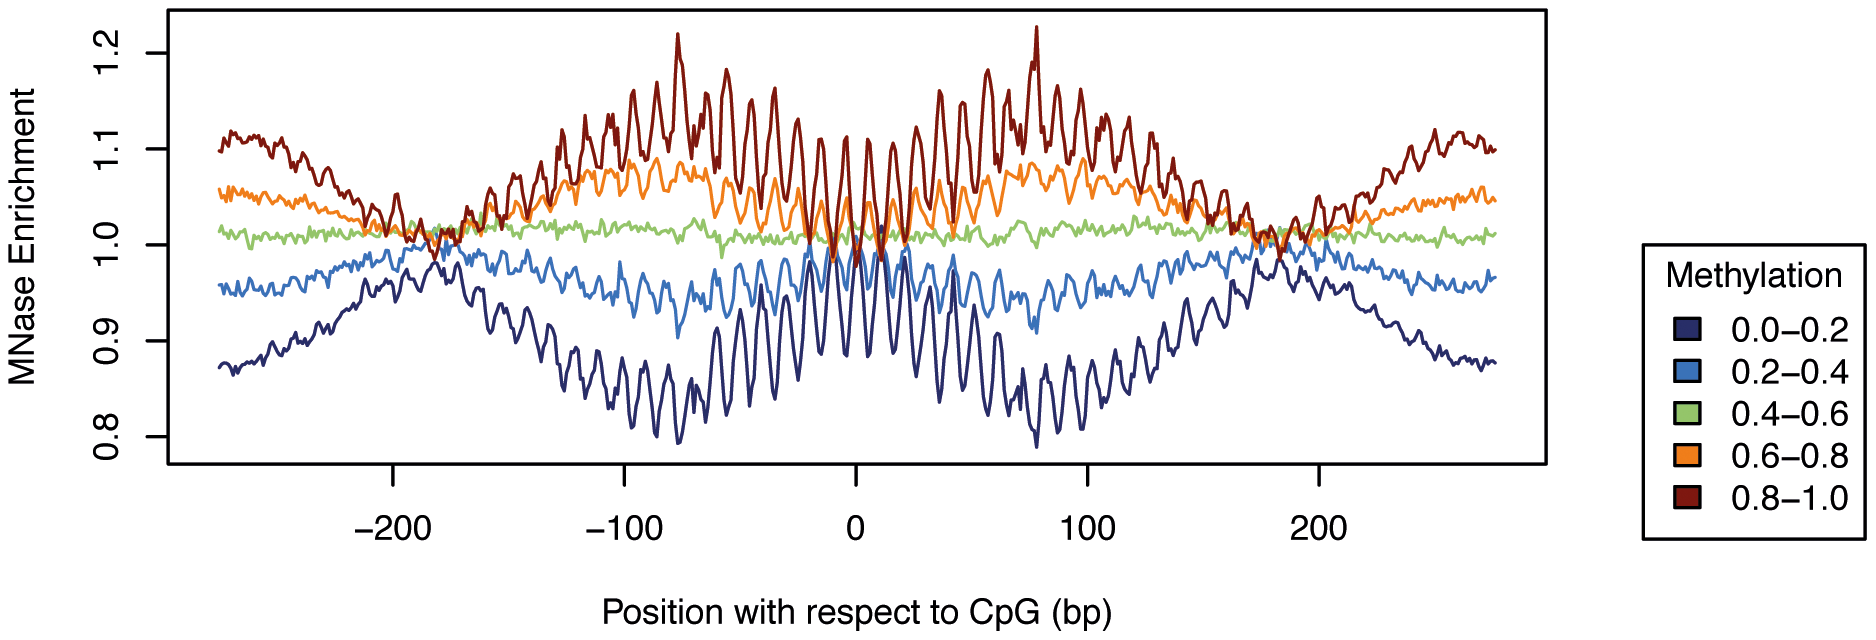 Nucleosome positioning explains only limited variation in methylation in PMDs.